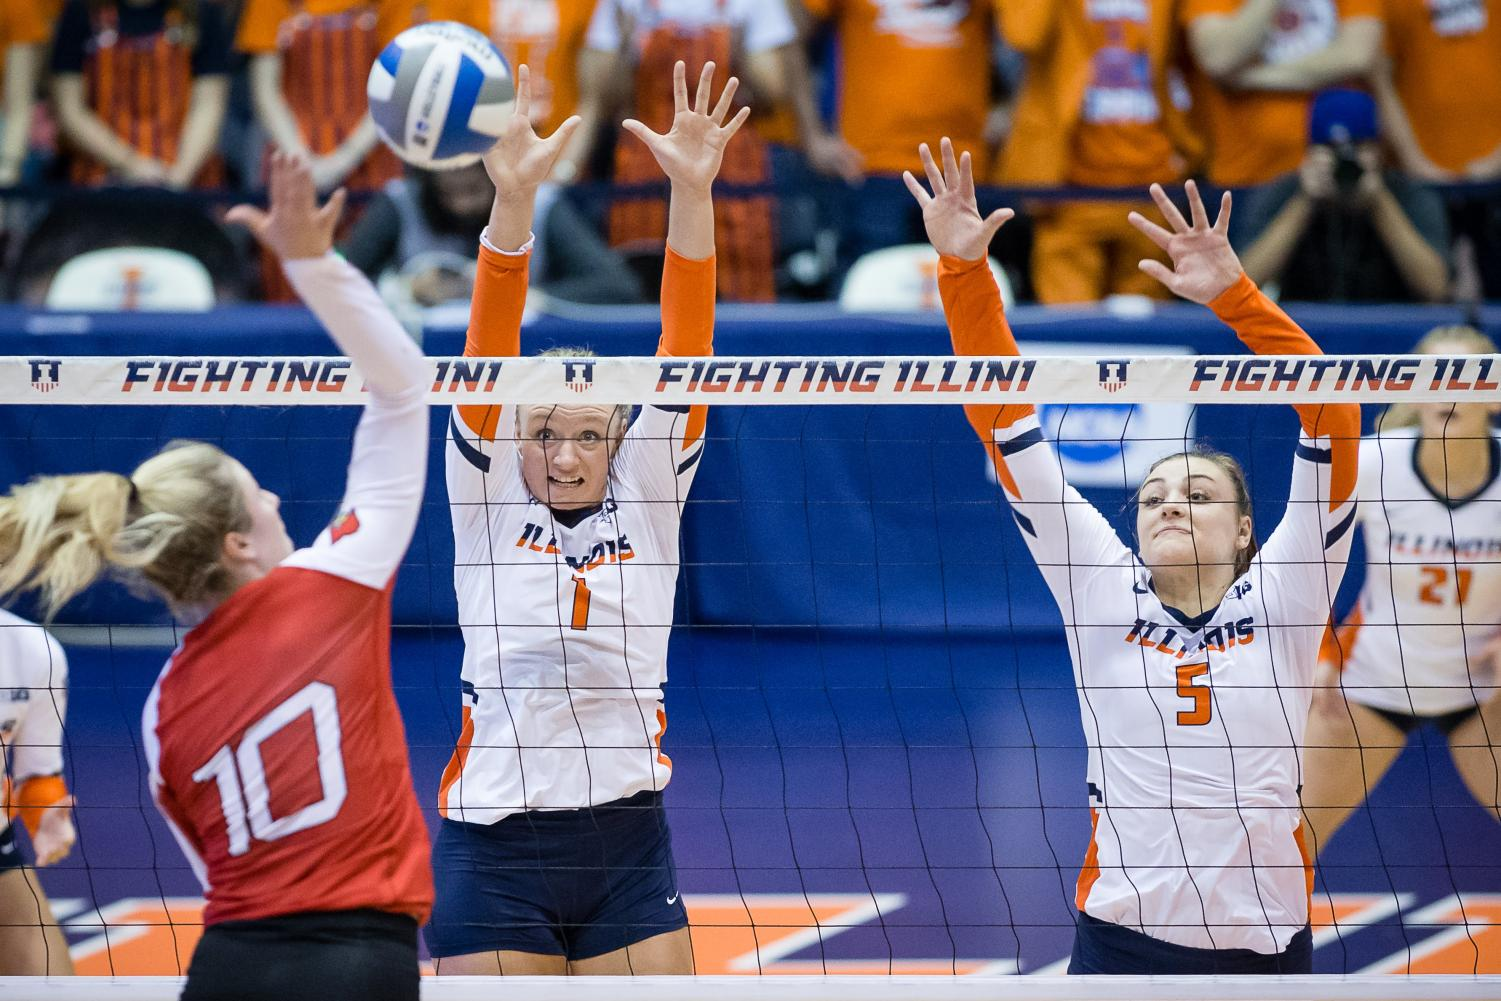 Illinois setter Jordyn Poulter, left, and middle blocker Ali Bastianelli, right, try to block the ball during the match against Louisville in the second round of the NCAA Tournament at Huff Hall on Saturday. The Illini won 3-1.